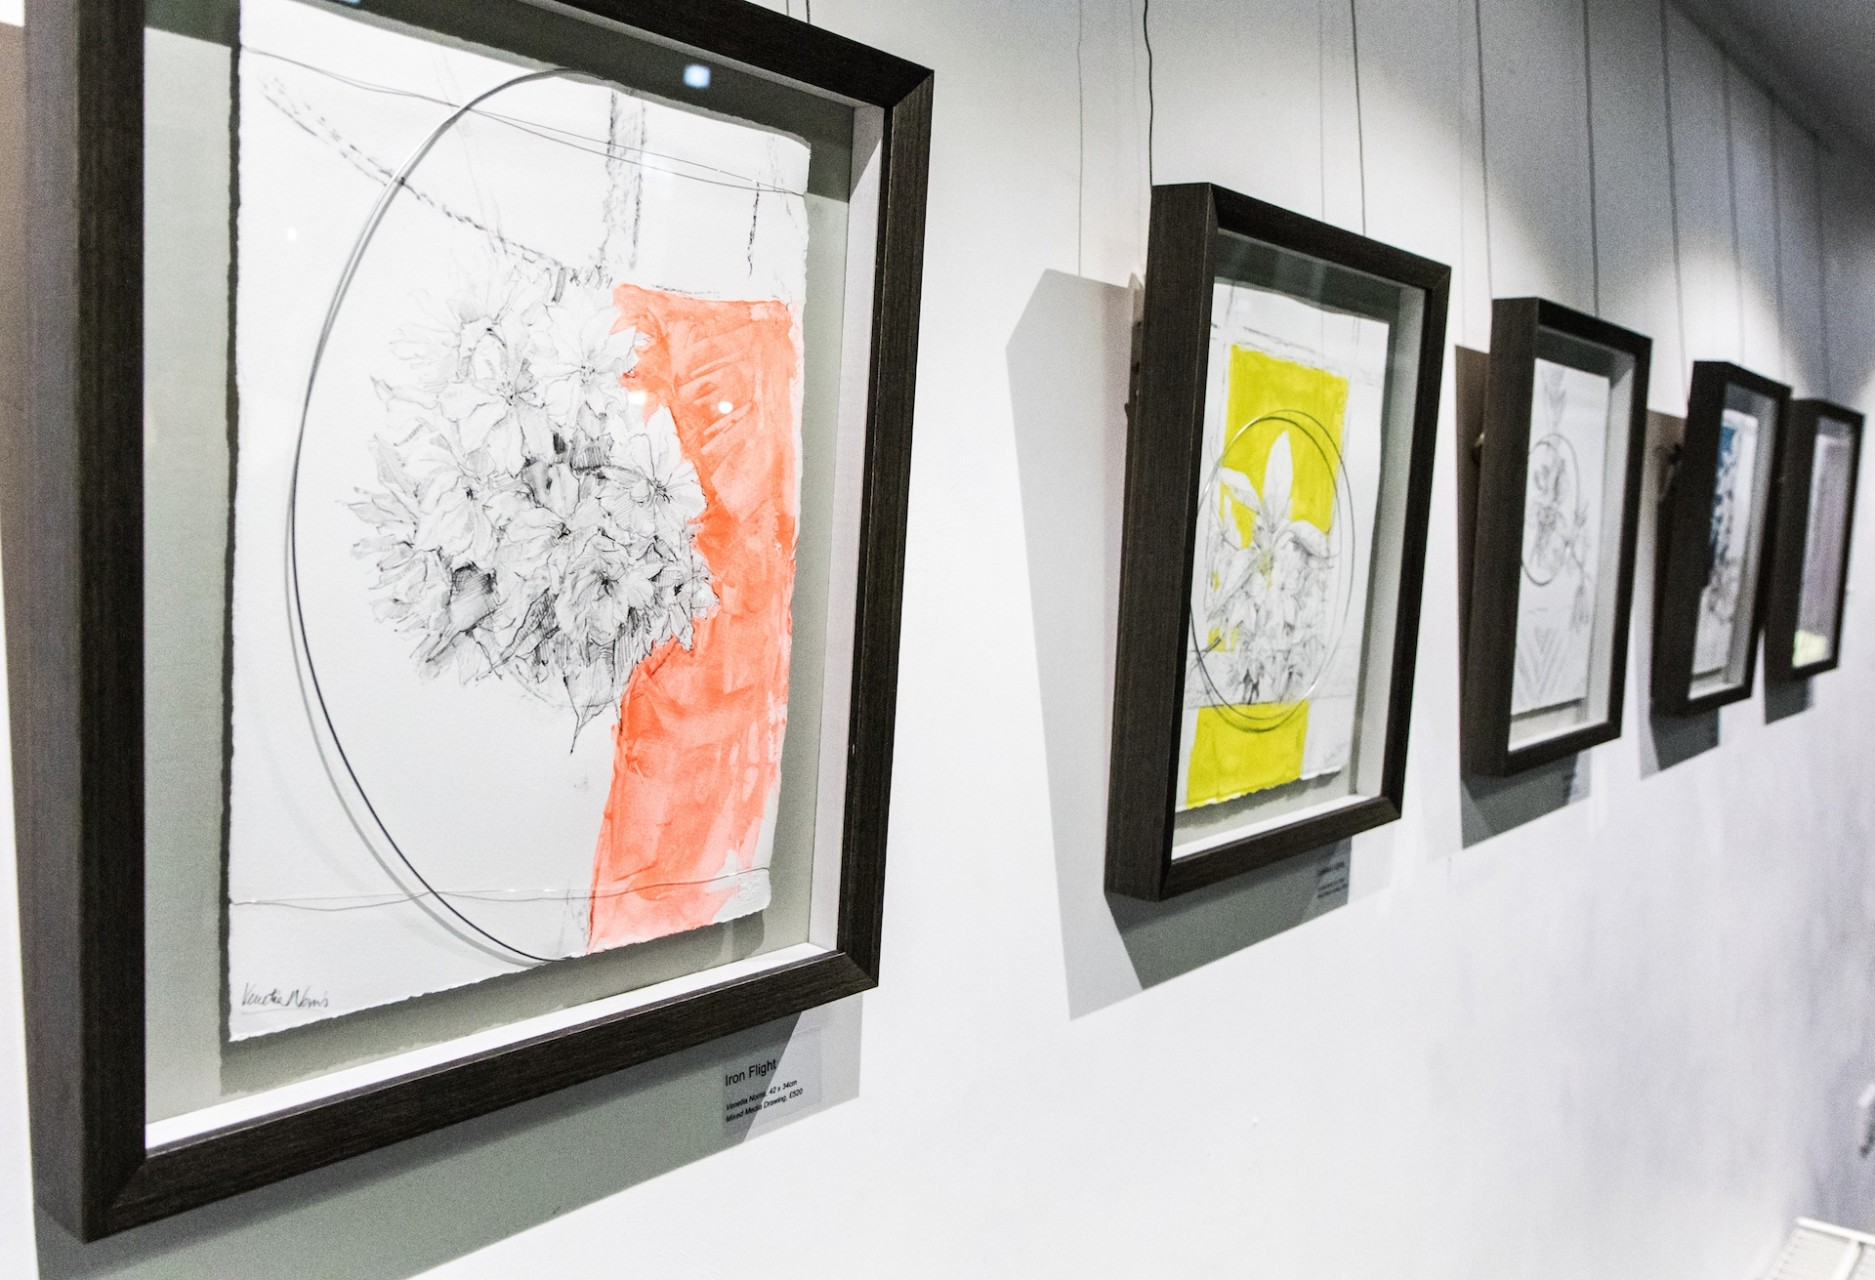 Layered Drawings, NLCS, London, 2015, photographer: Graham Ryder